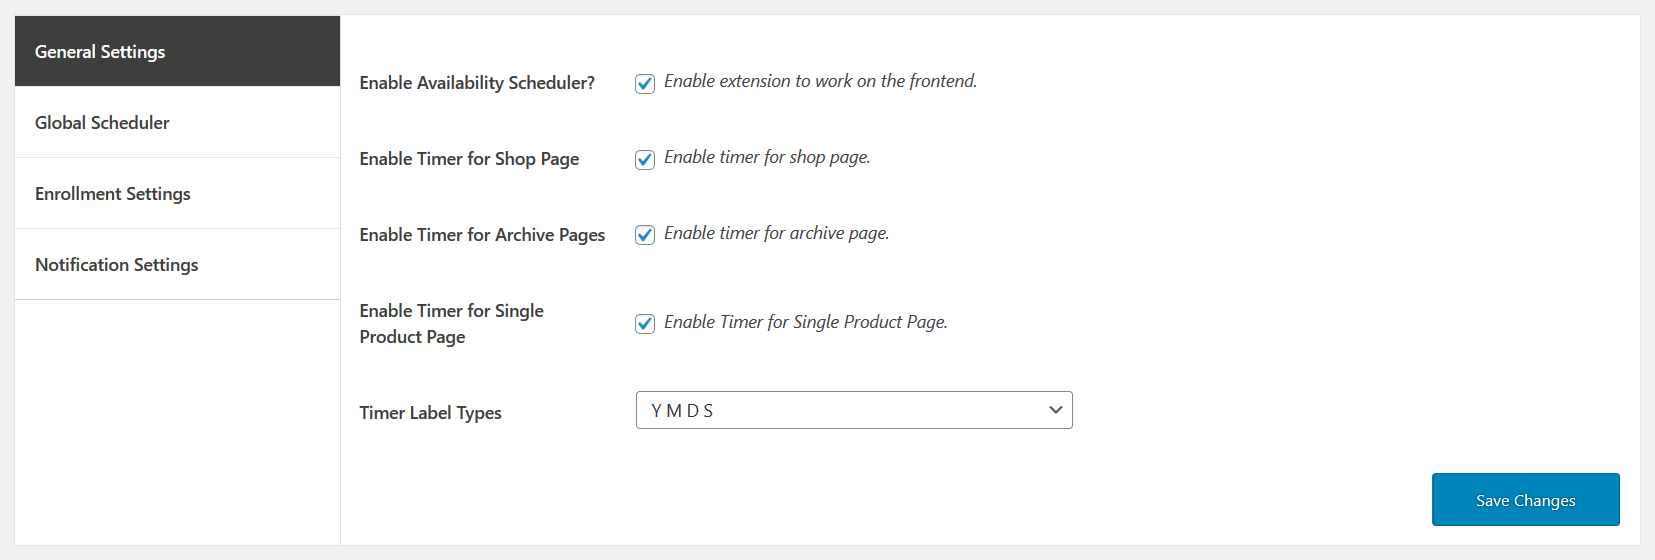 availability scheduler for woocommerce general settins